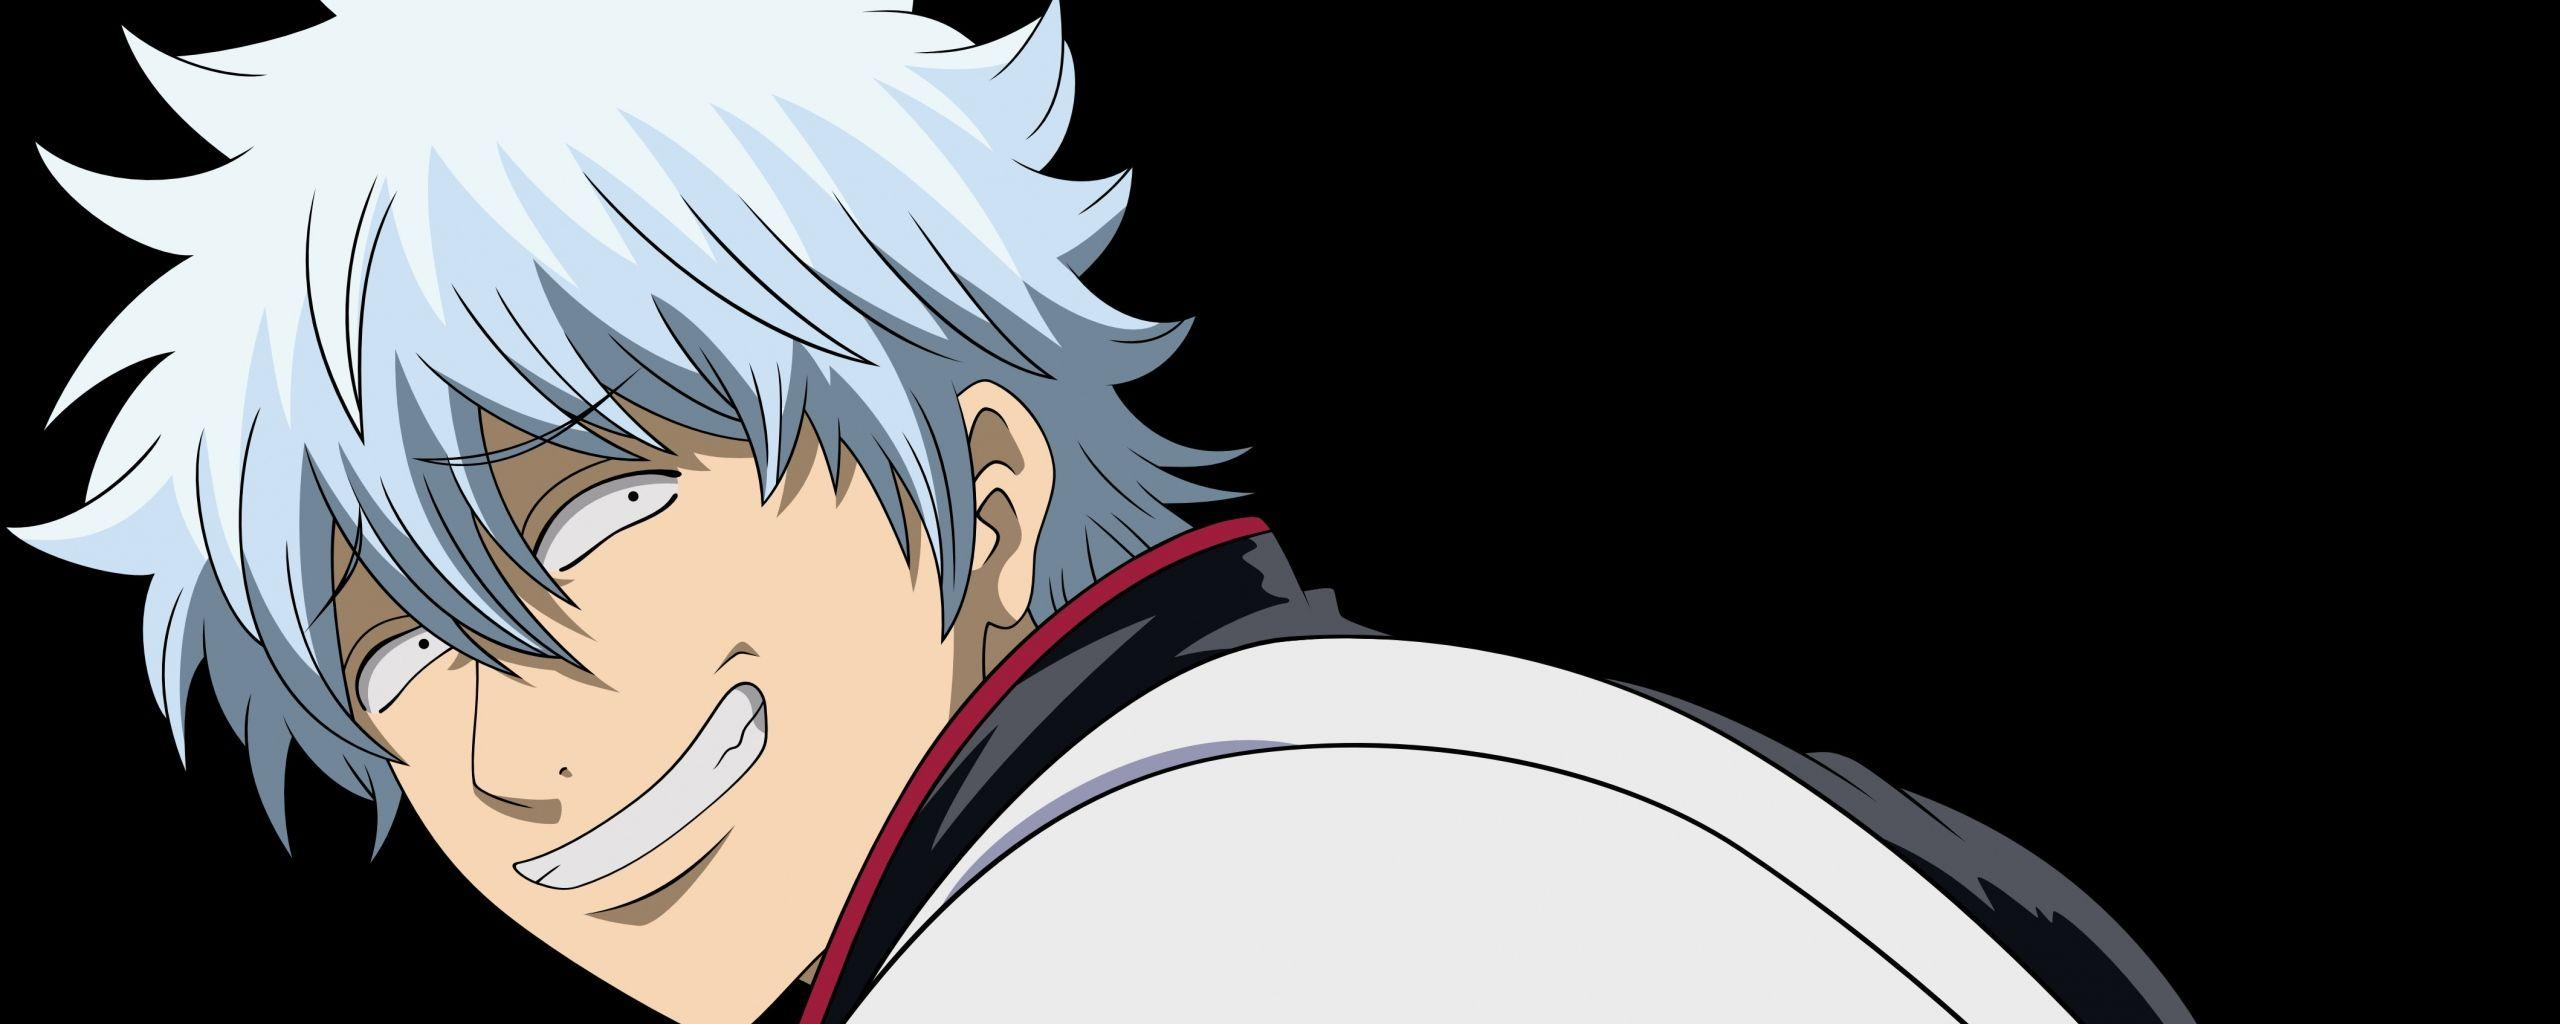 Download Wallpapers 2560x1024 Gintama, Gintoki sakata, Art Dual